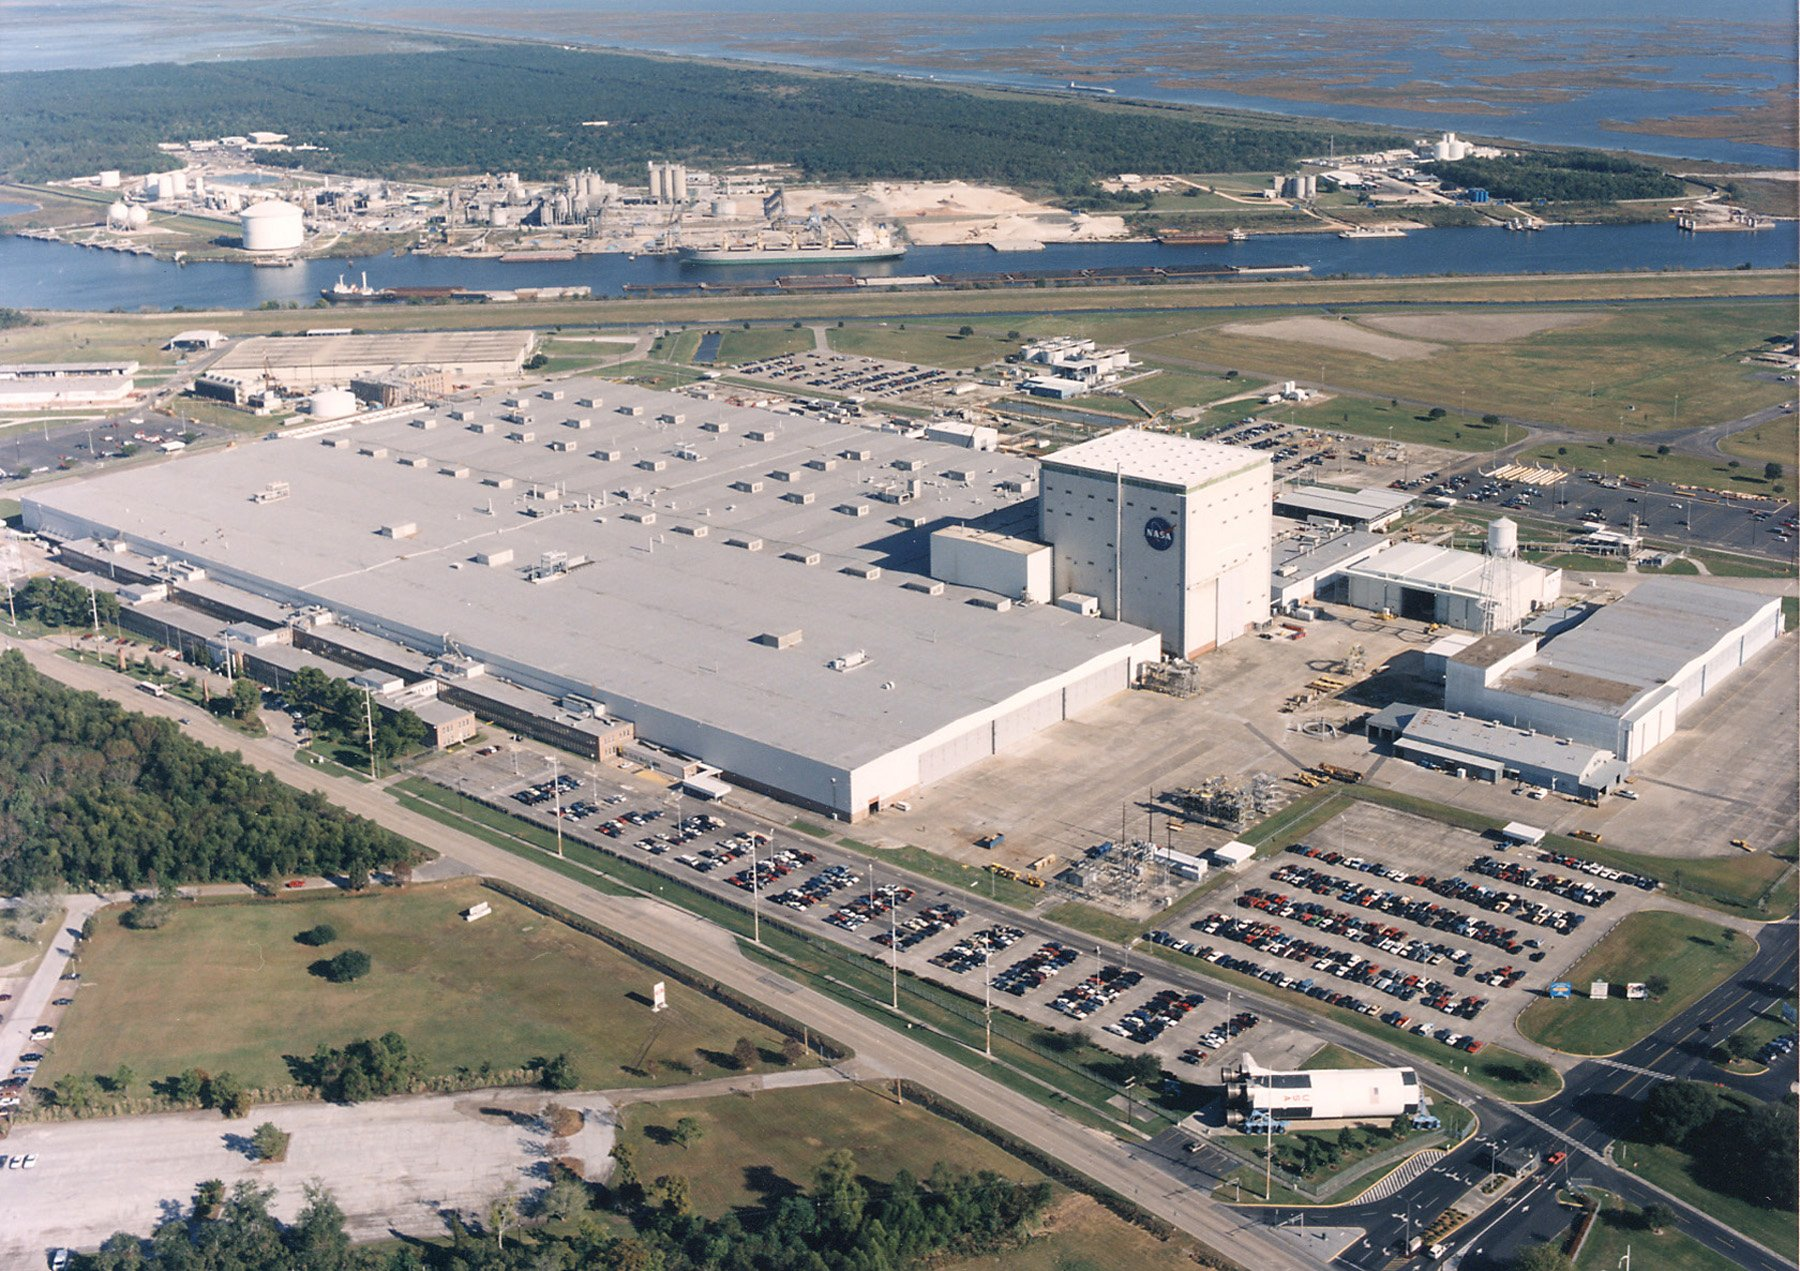 spacecraft assembly facility - photo #43